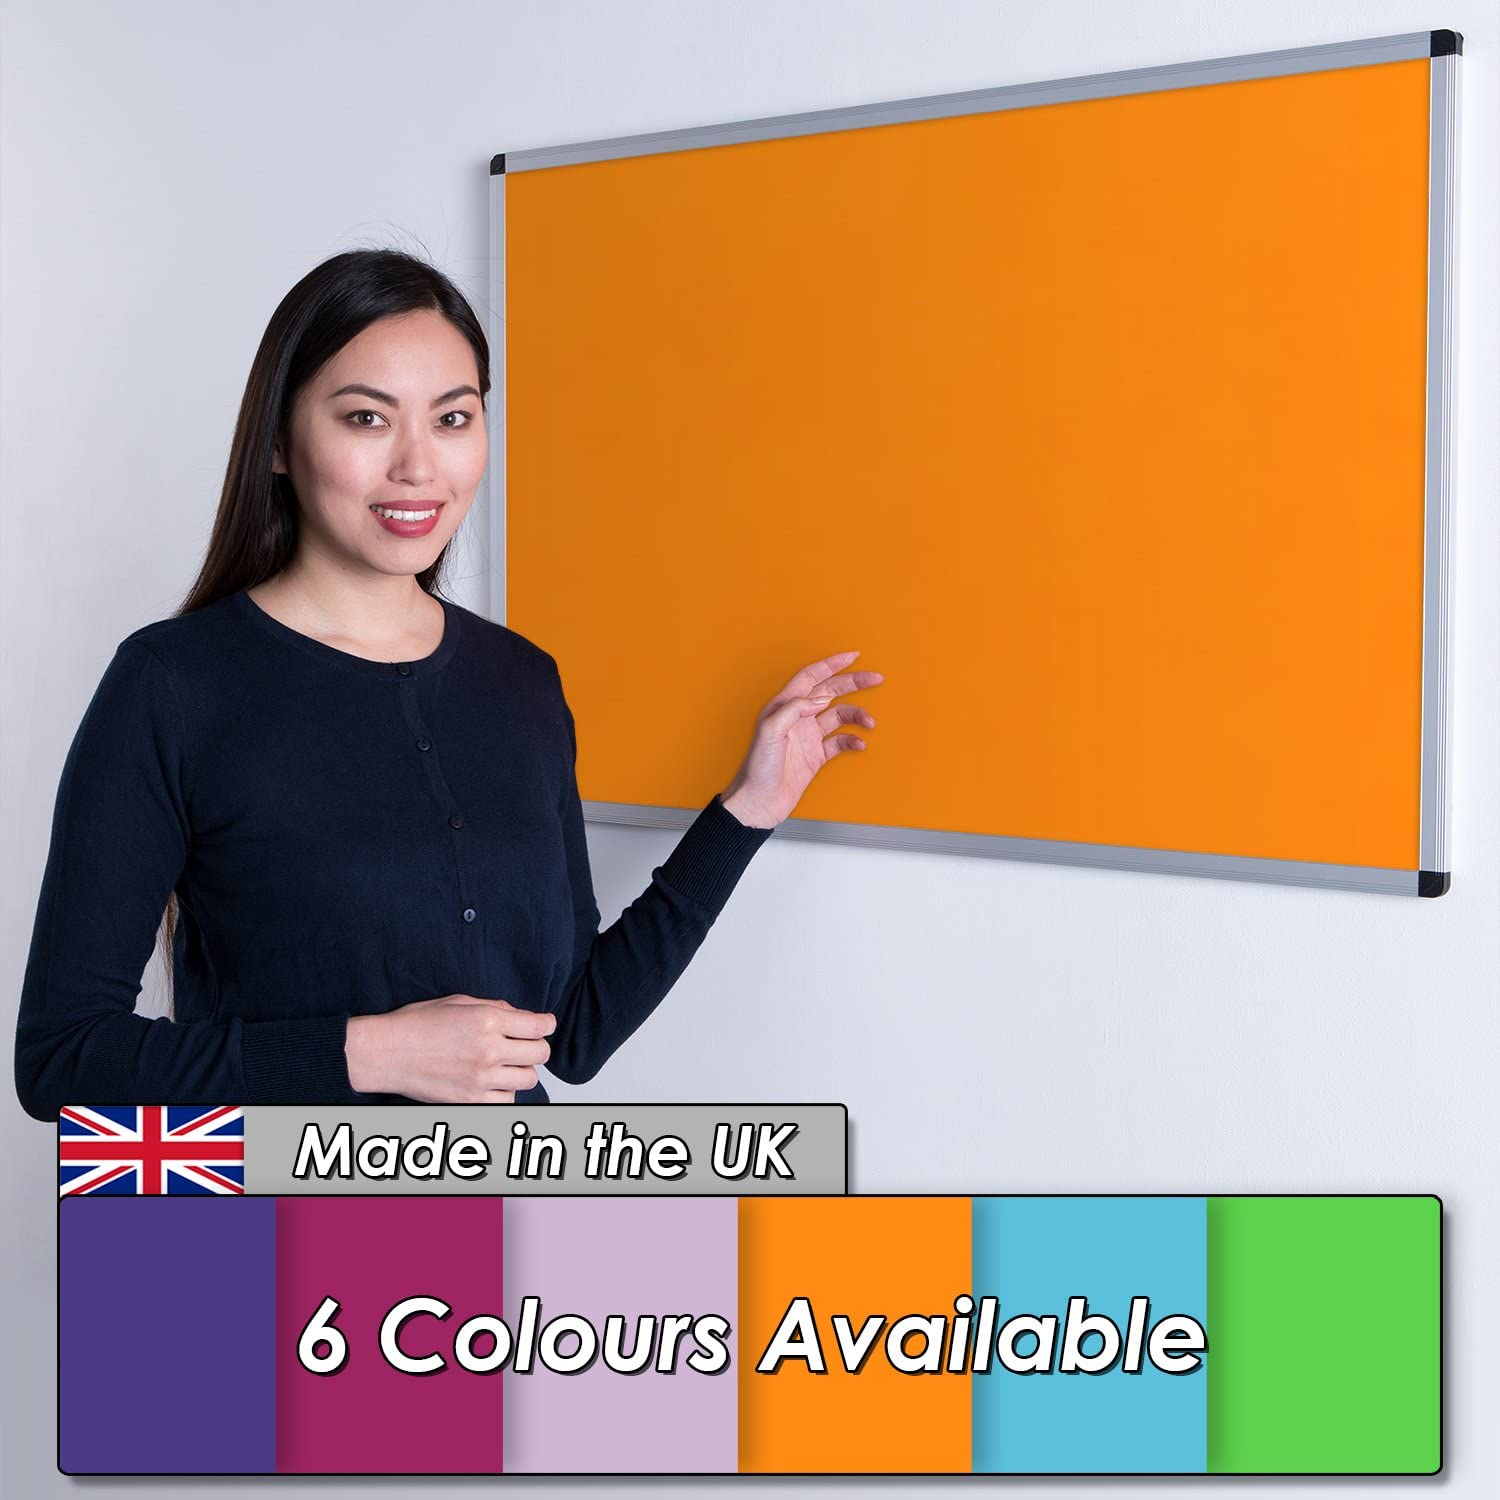 6 Colours to Choose from Violet Wonderwall New Premium Vibrant Noticeboard Aluminium Frame 90x60cm with Fixings Including